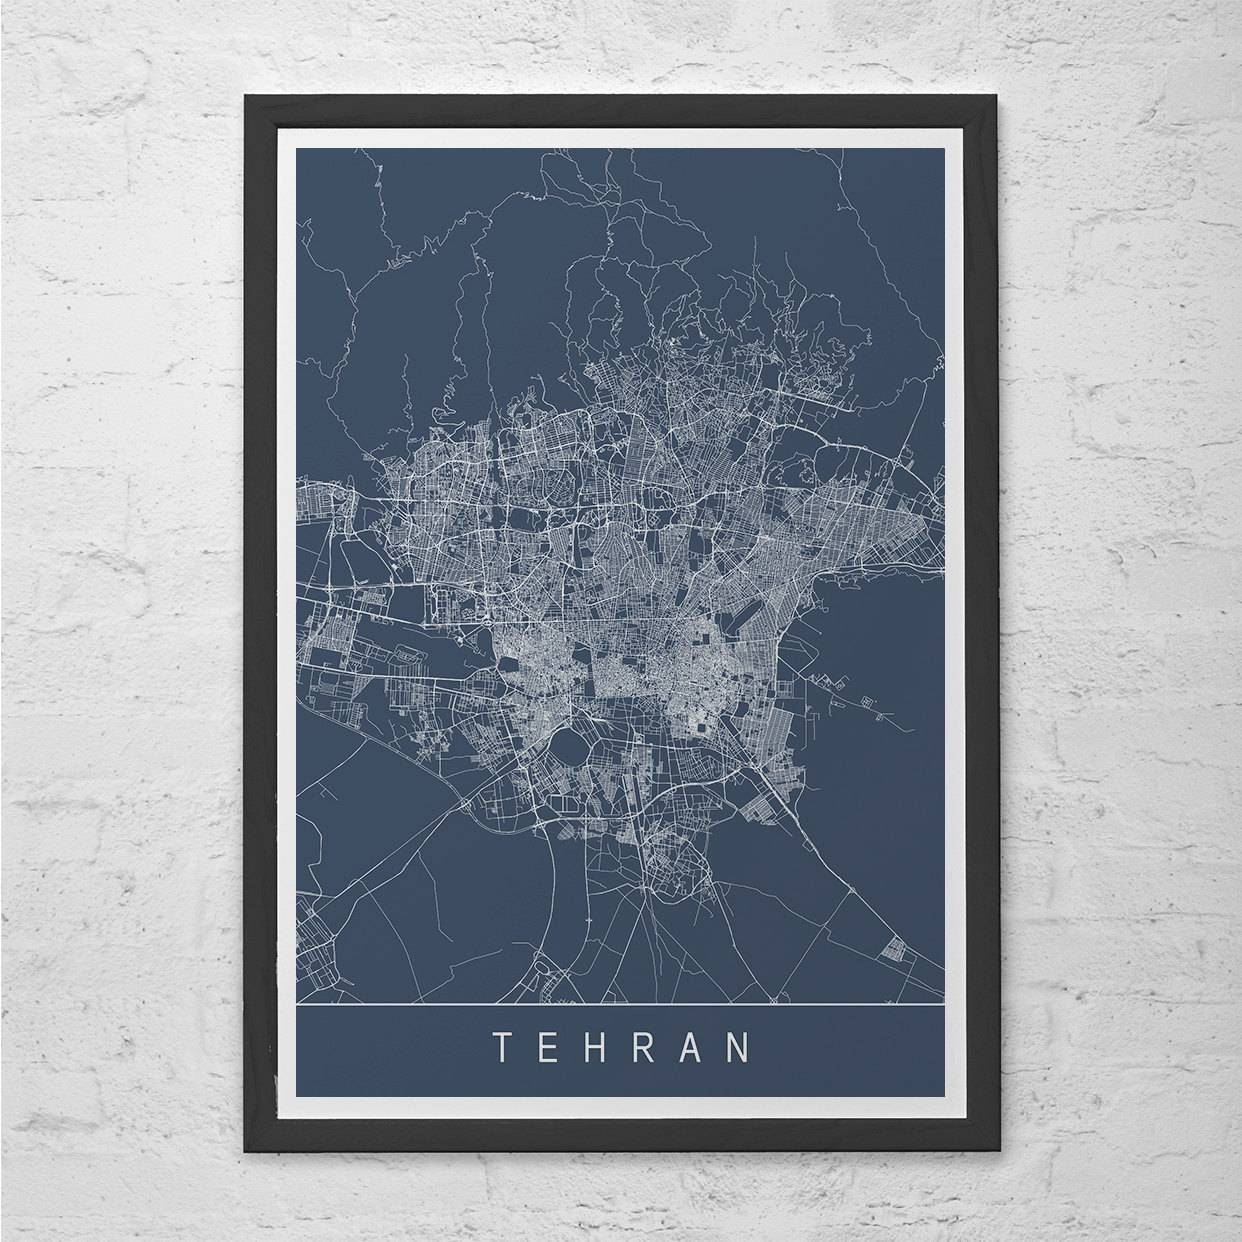 Tehran Map Print Modern City Print Art Customizable City Pertaining To Current City Prints Map Wall Art (View 7 of 20)